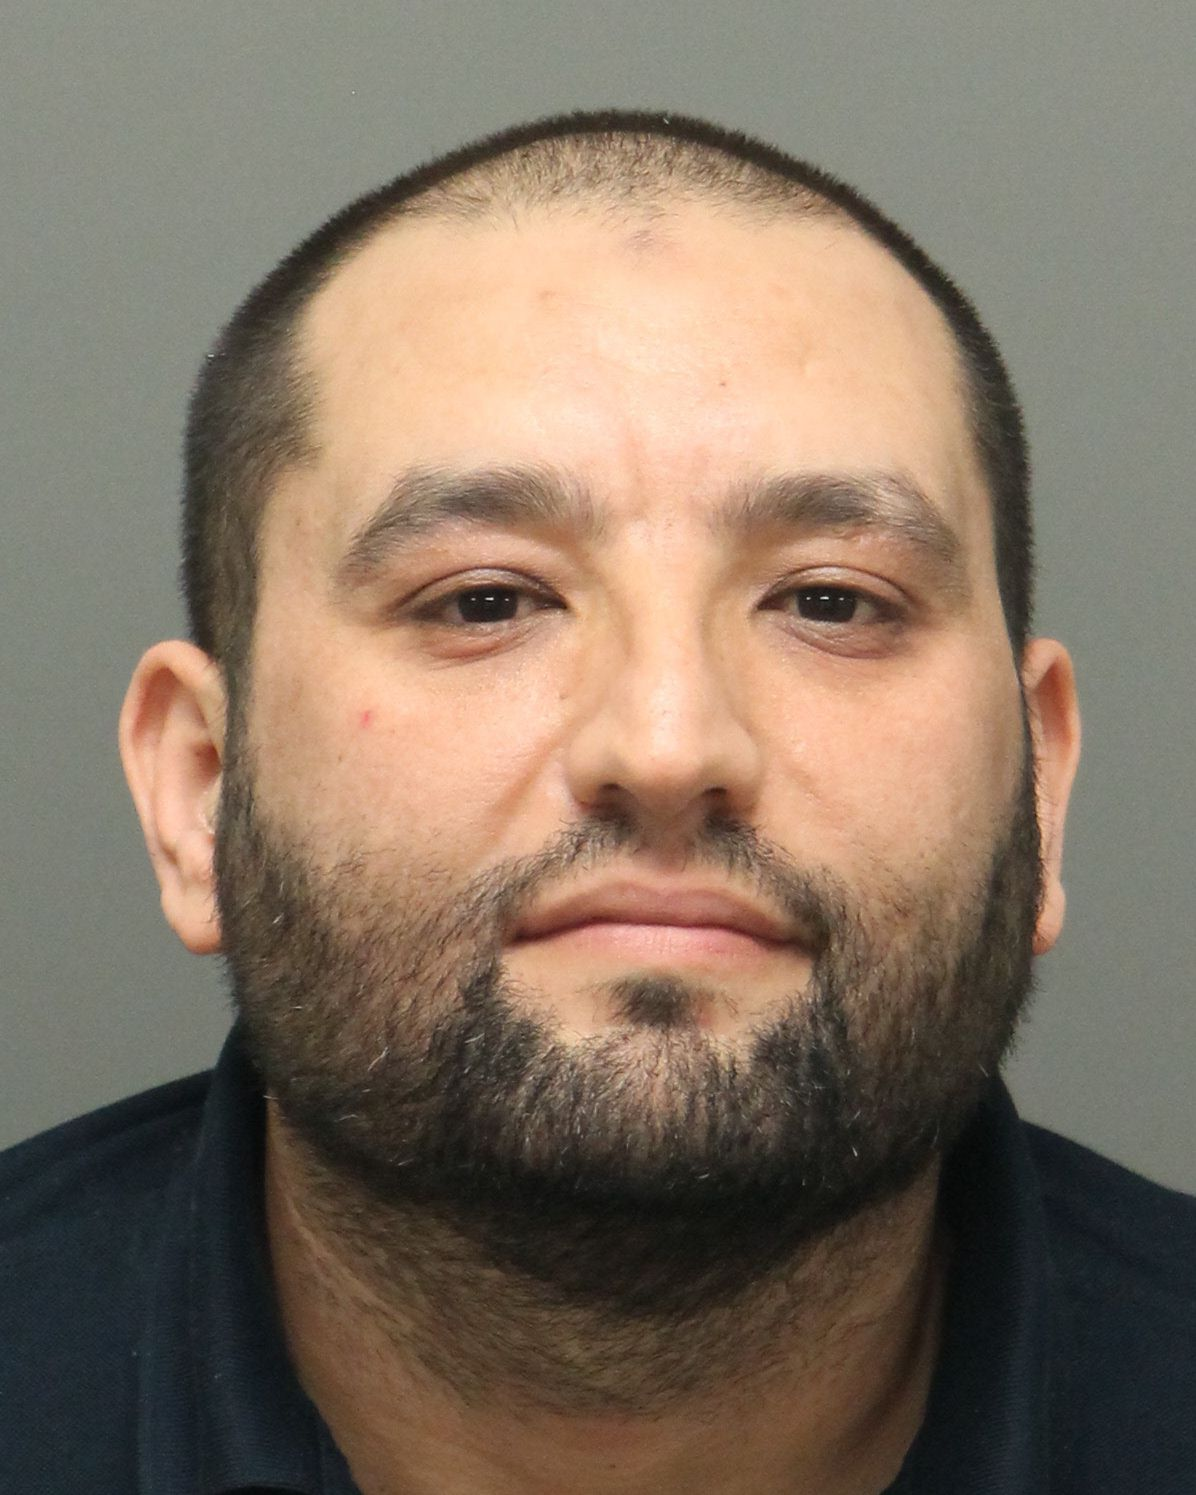 ABDUL ALKAHEIL MOHAMAD-SAMER Info, Photos, Data, and More / Wake County Public Records